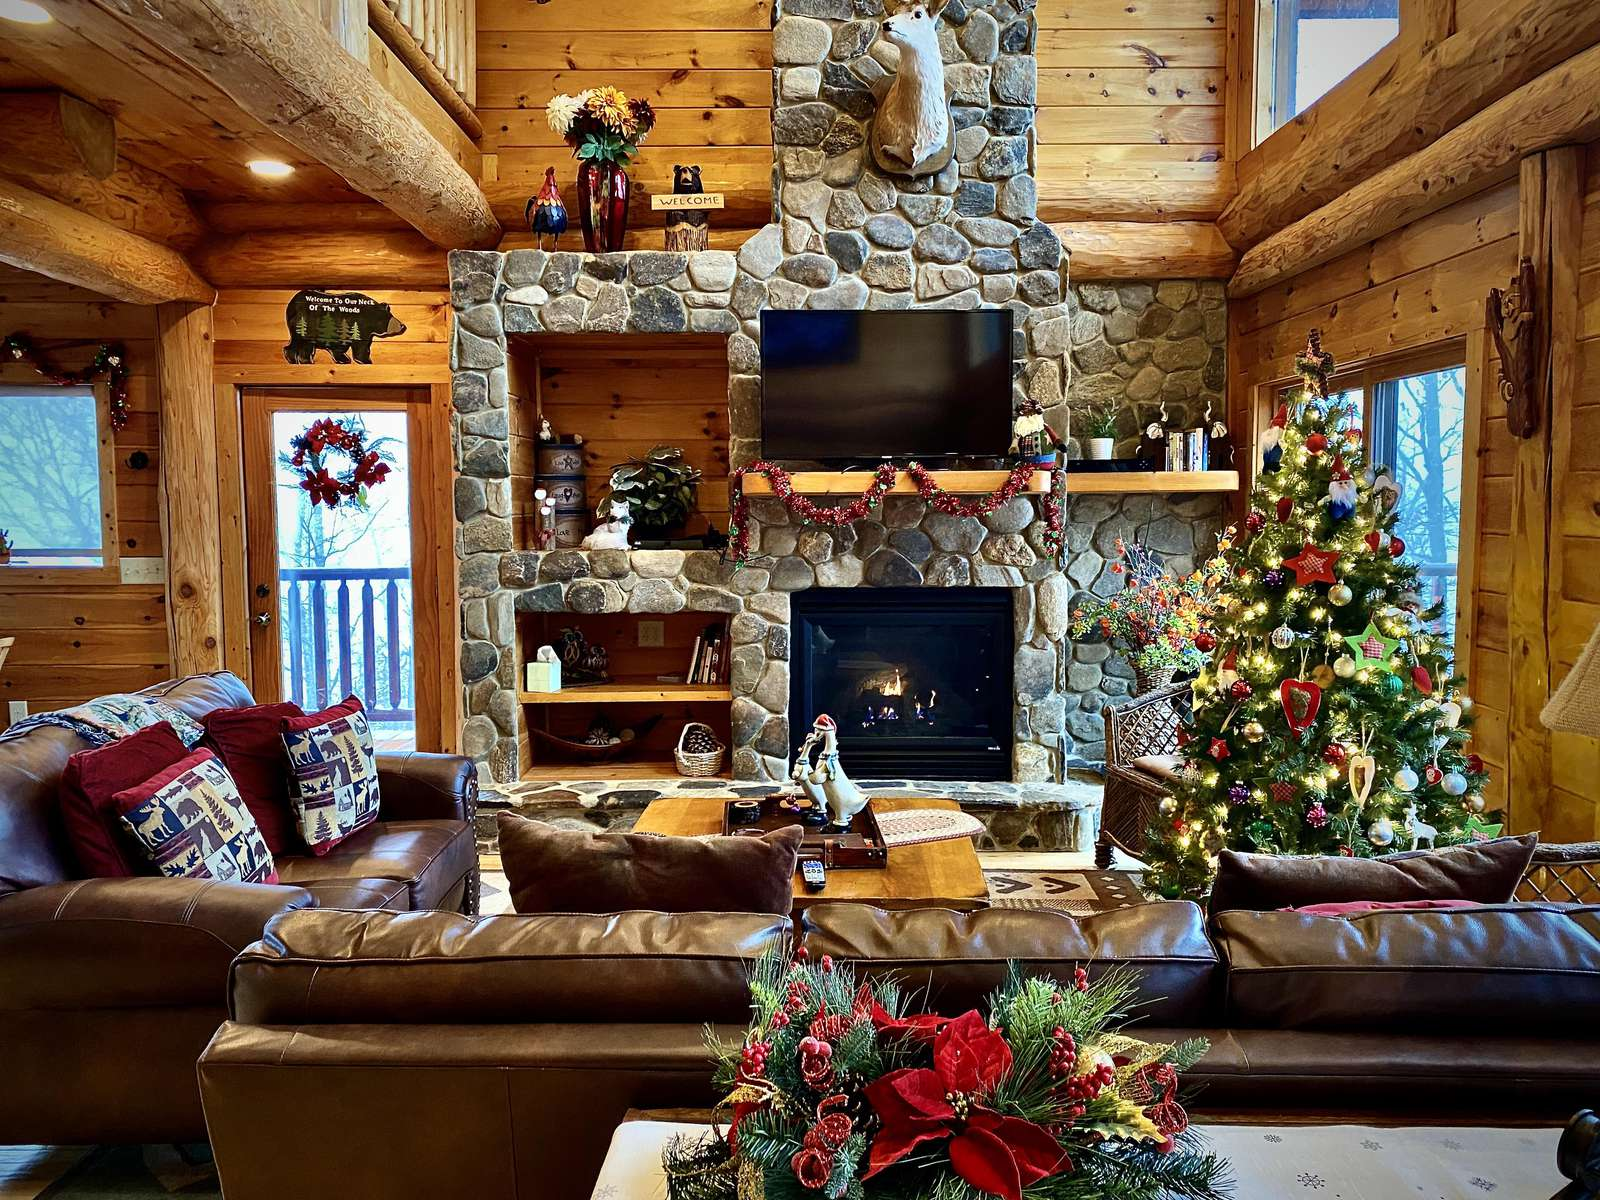 Bella Vista is Beautifully Decorated for the Holidays